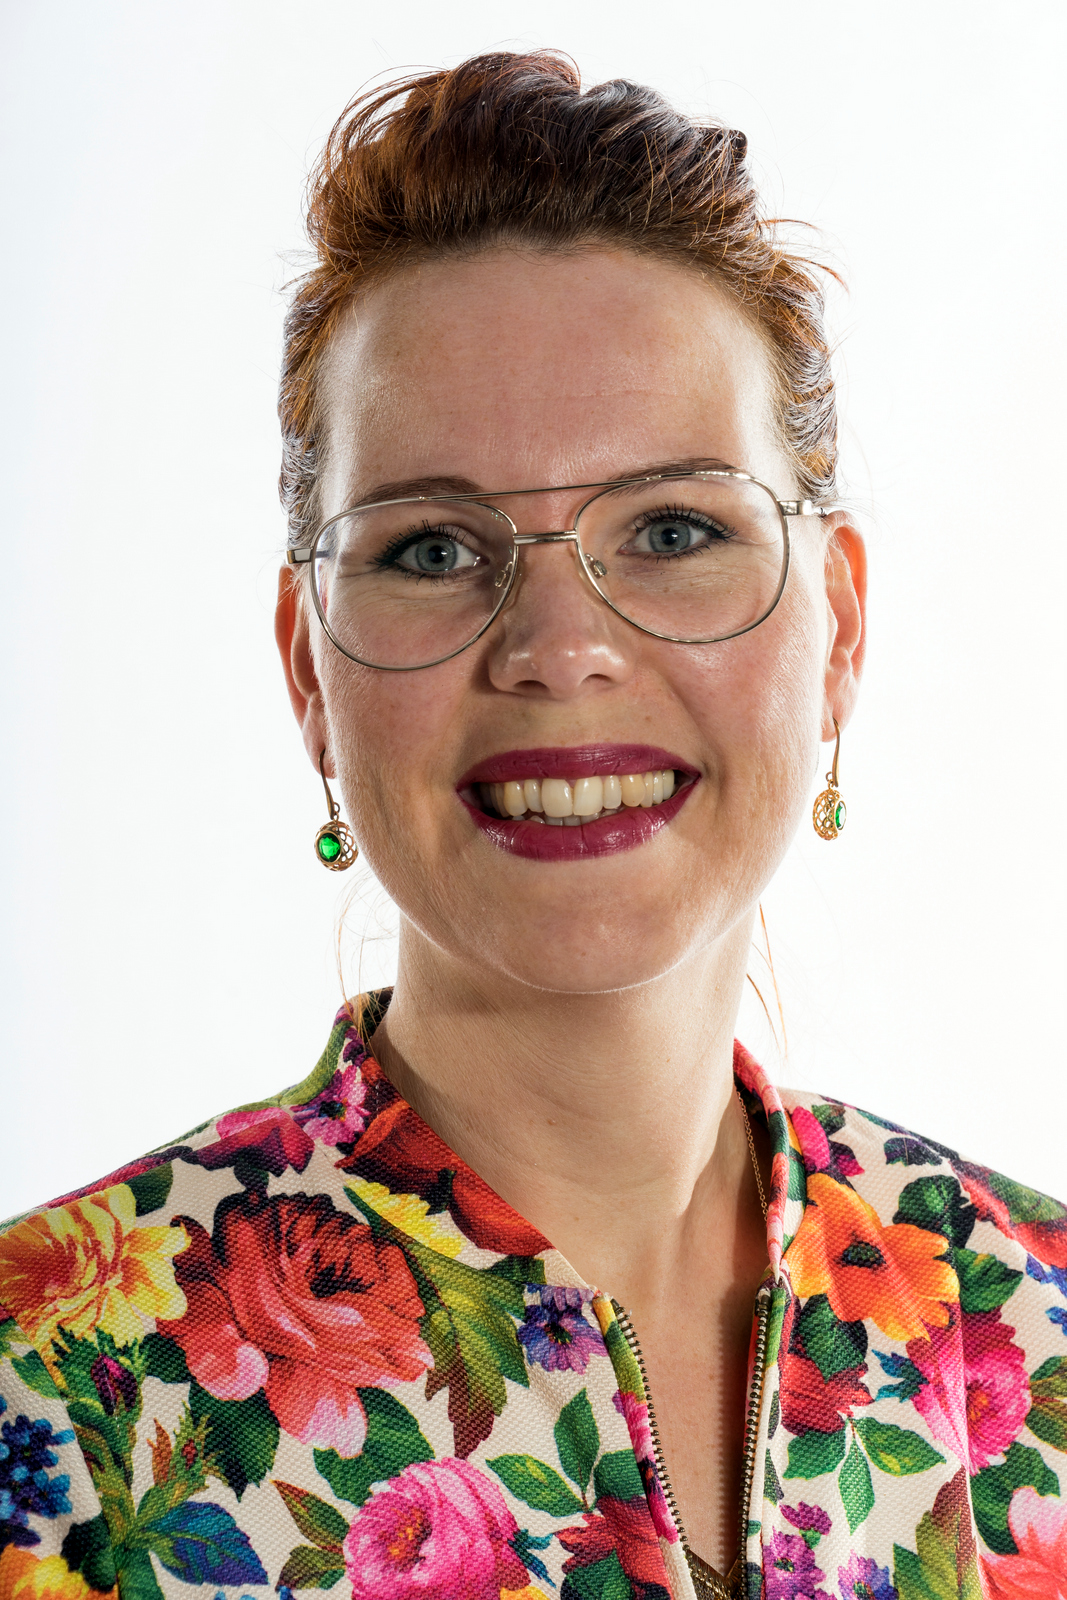 6. Esther Maas-van den Hazel